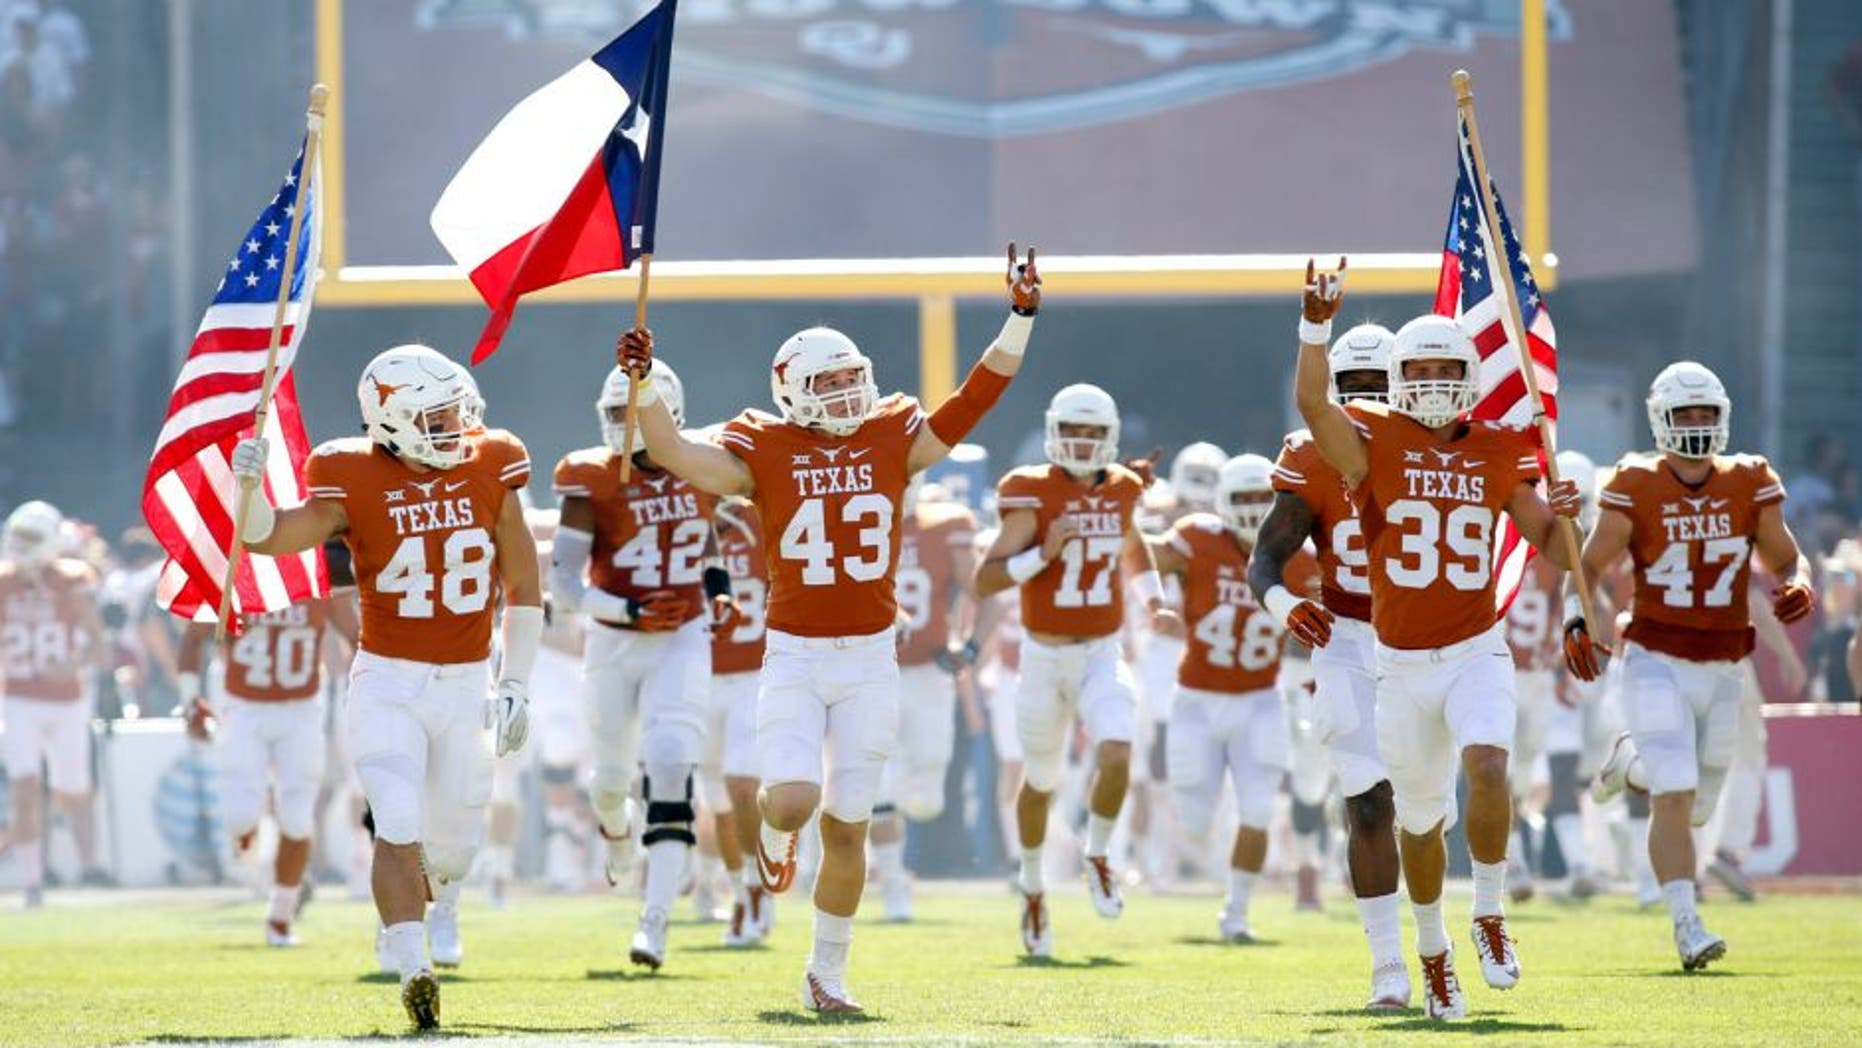 Oct 10, 2015; Dallas, TX, USA; Texas Longhorns players takes the field before the game against the Oklahoma Sooners at the Red River rivalry at Cotton Bowl Stadium. Texas won 24-17. Mandatory Credit: Tim Heitman-USA TODAY Sports